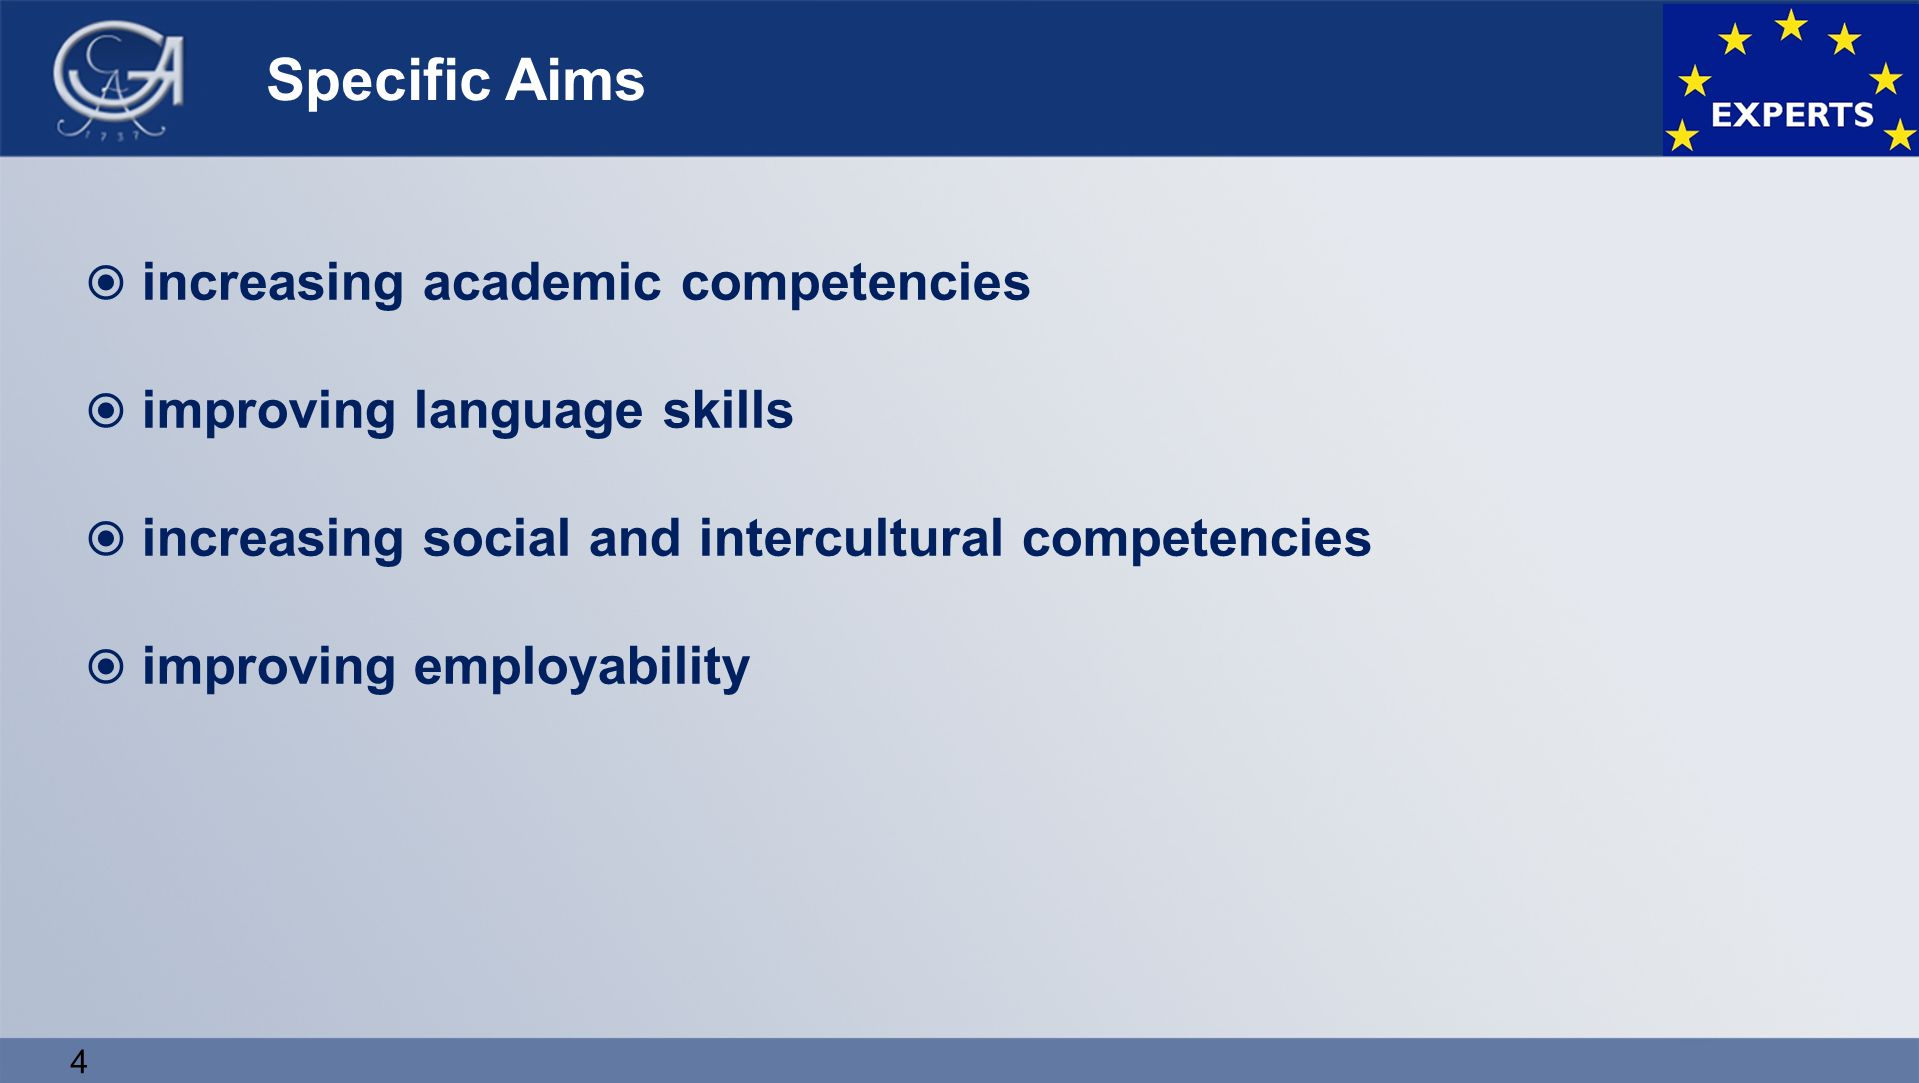 5 WHO can apply for EXPERTS & AREAS scholarships.